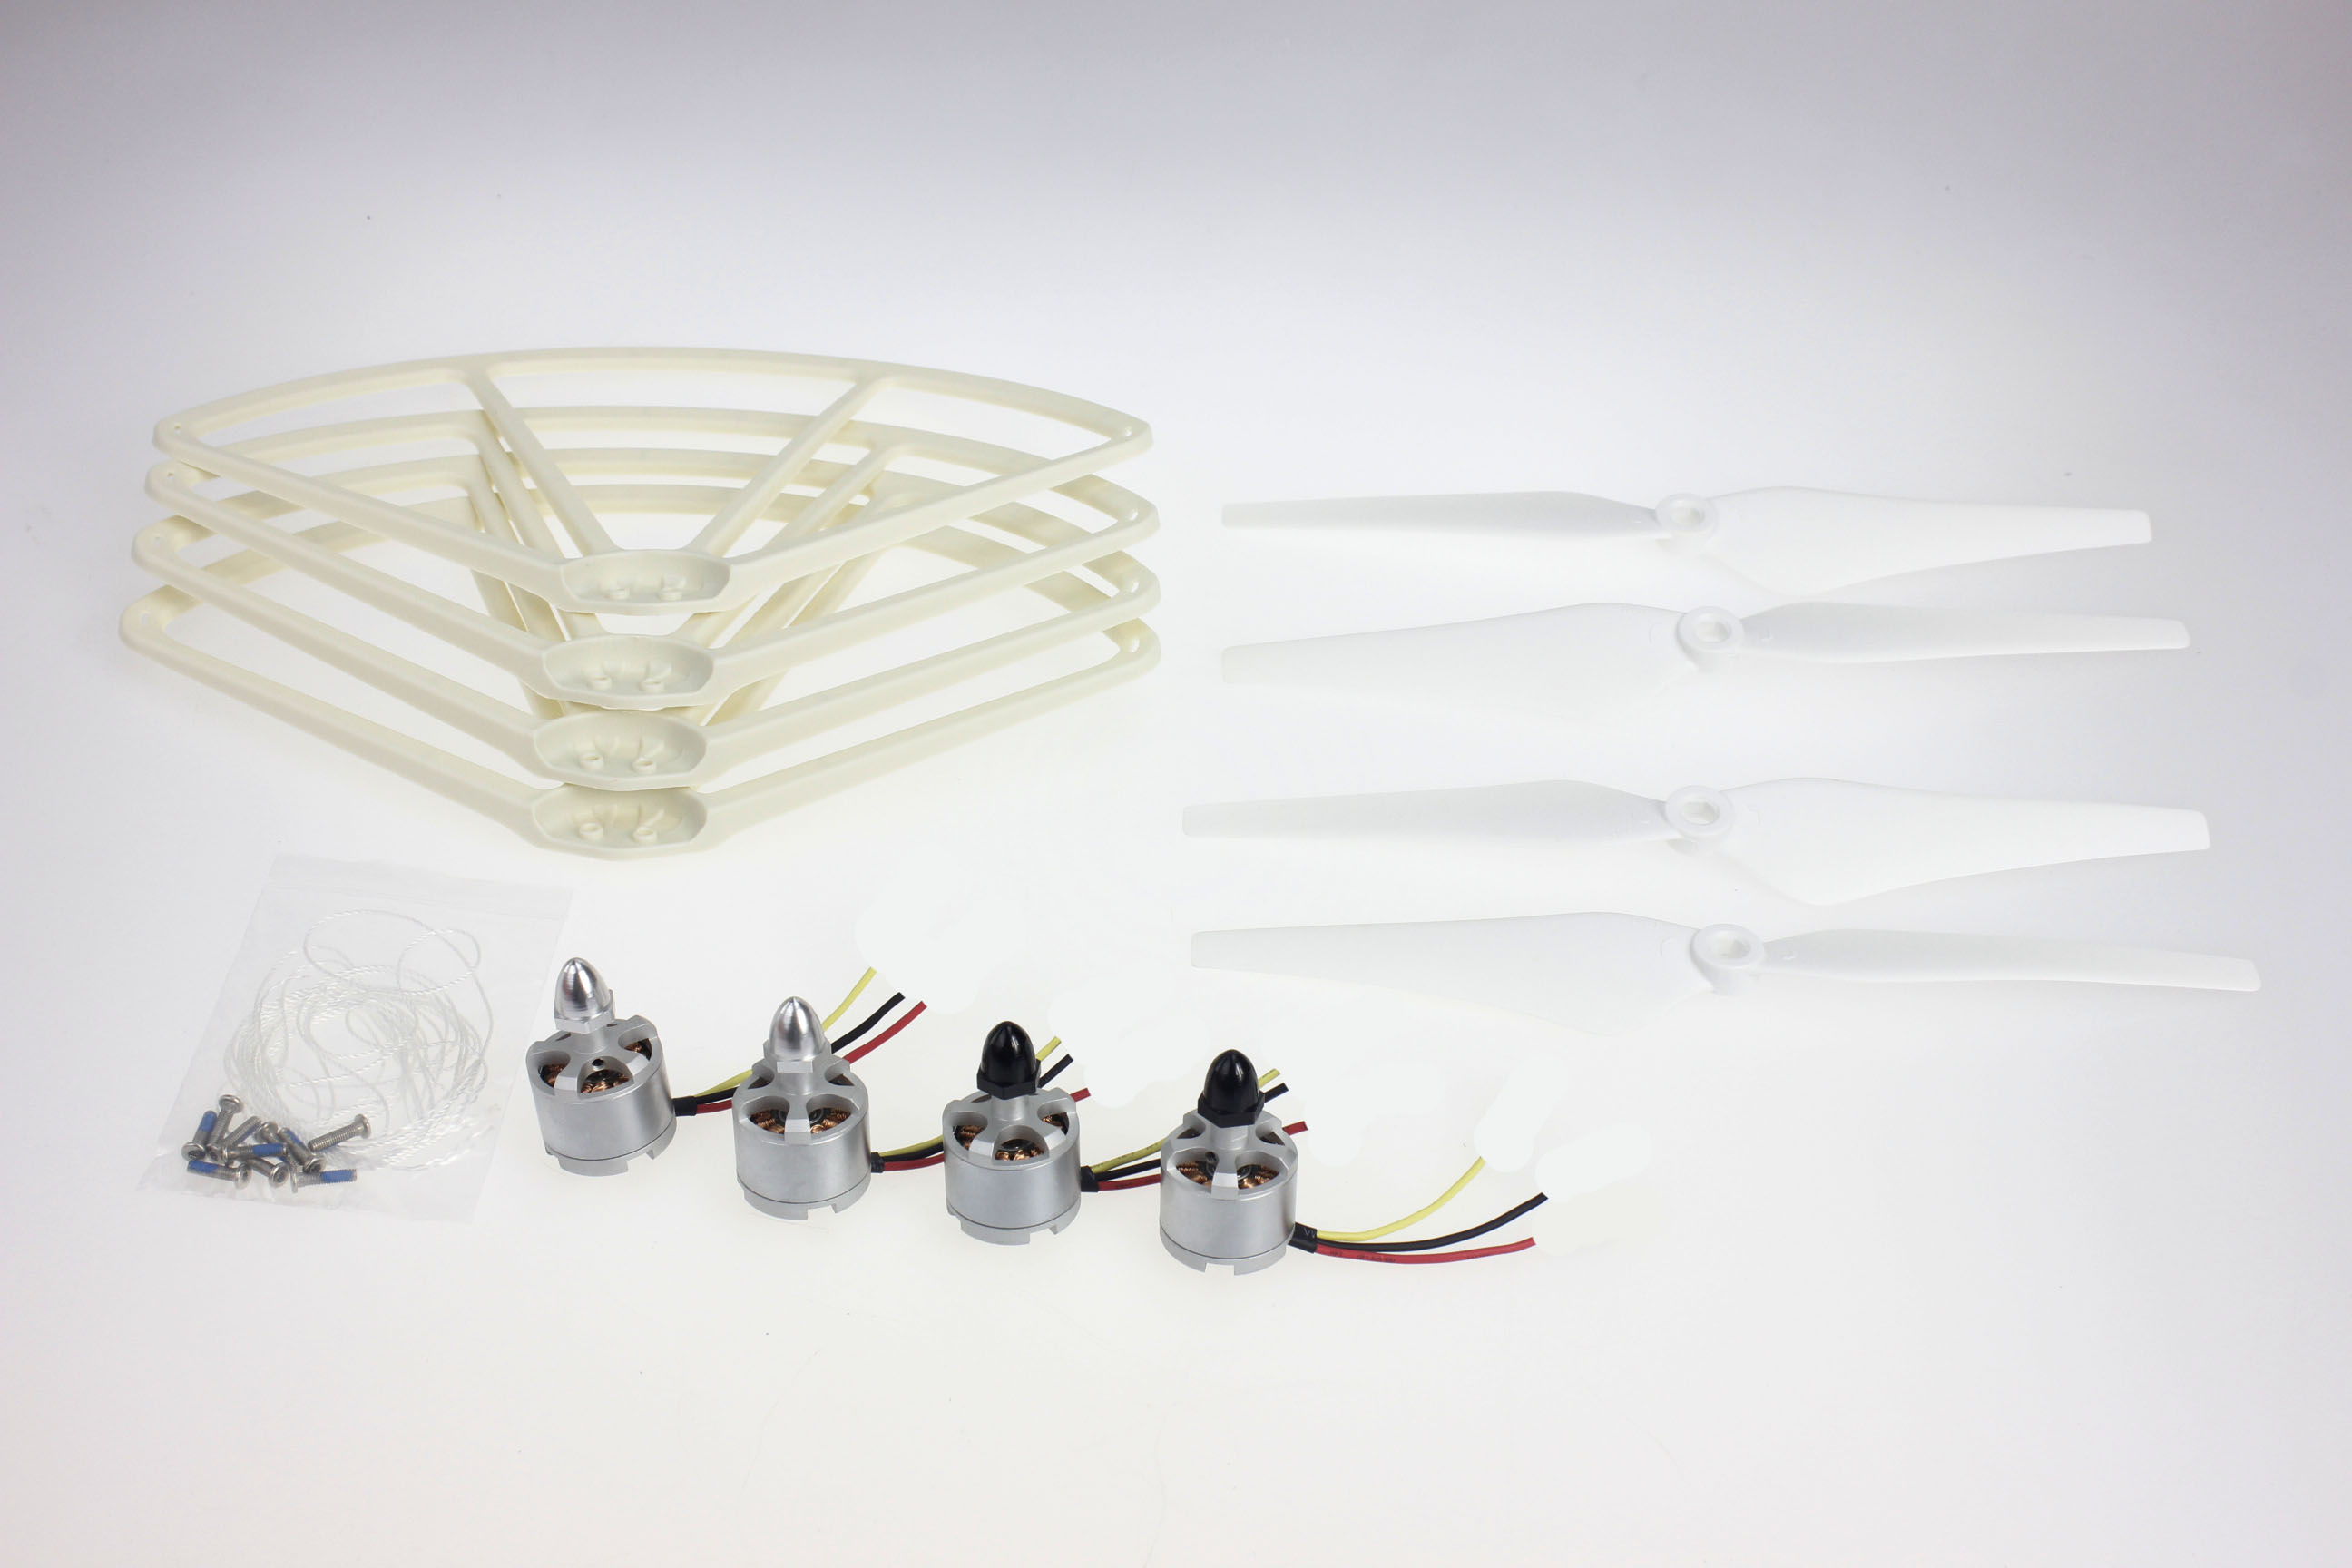 F14711-B CW CCW 2212 920KV Brushless Motor 9443 Props Propeller Guard Bumper Protector for RC Quadcopter  Phantom 1 2 Drone<br>